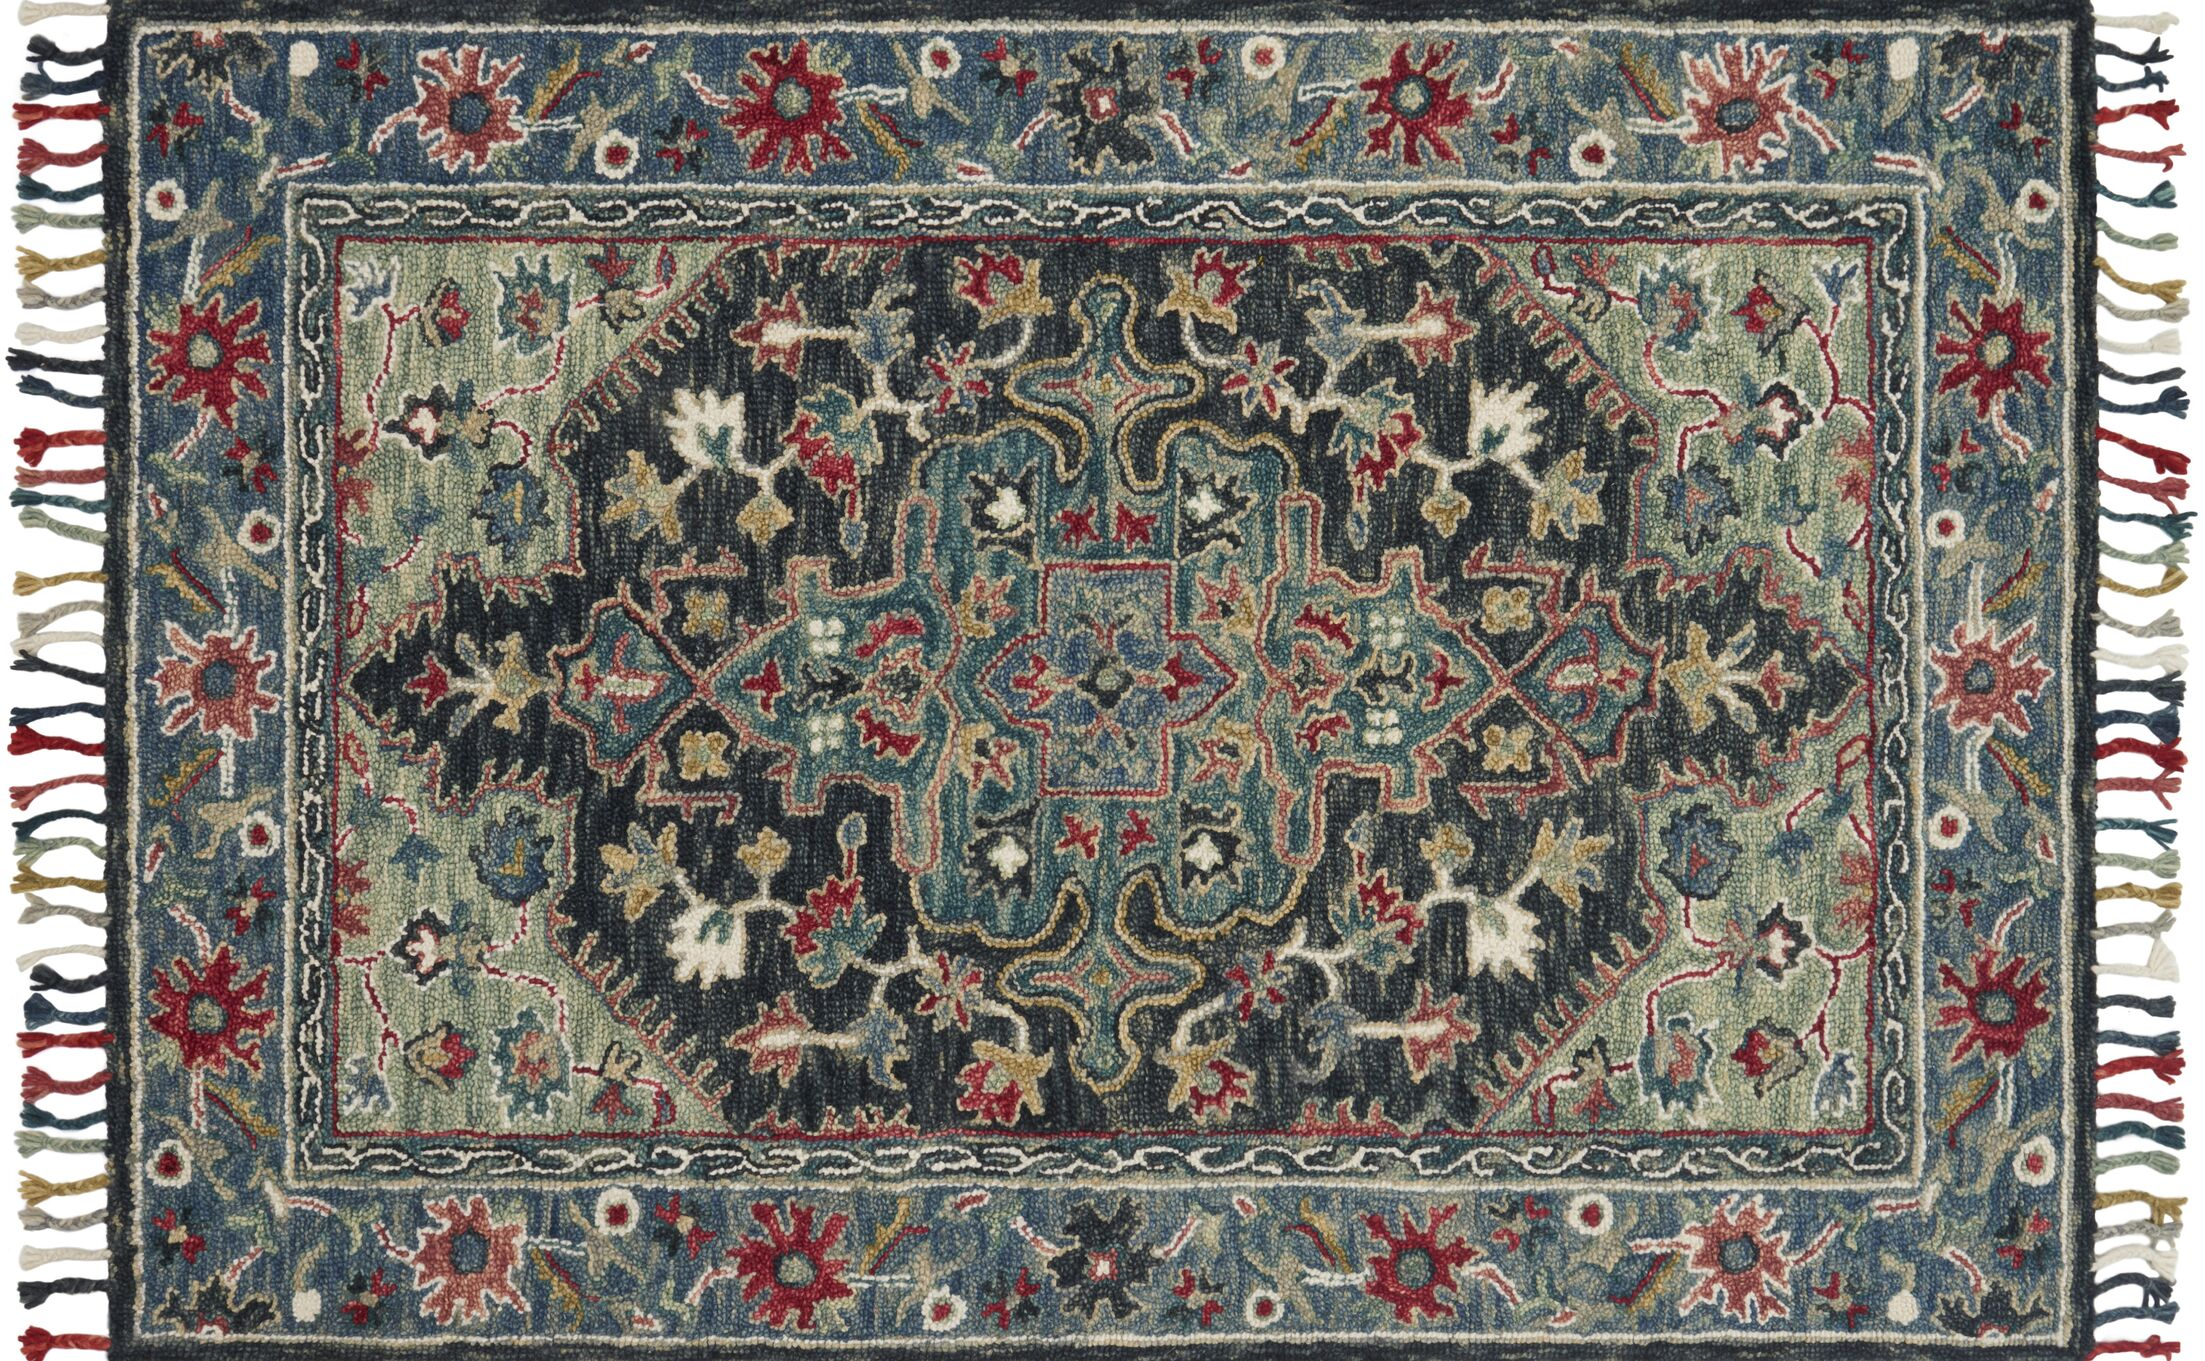 Oneil Hand-Hooked Wool Navy/Blue Area Rug Rug Size: Rectangle 7'9